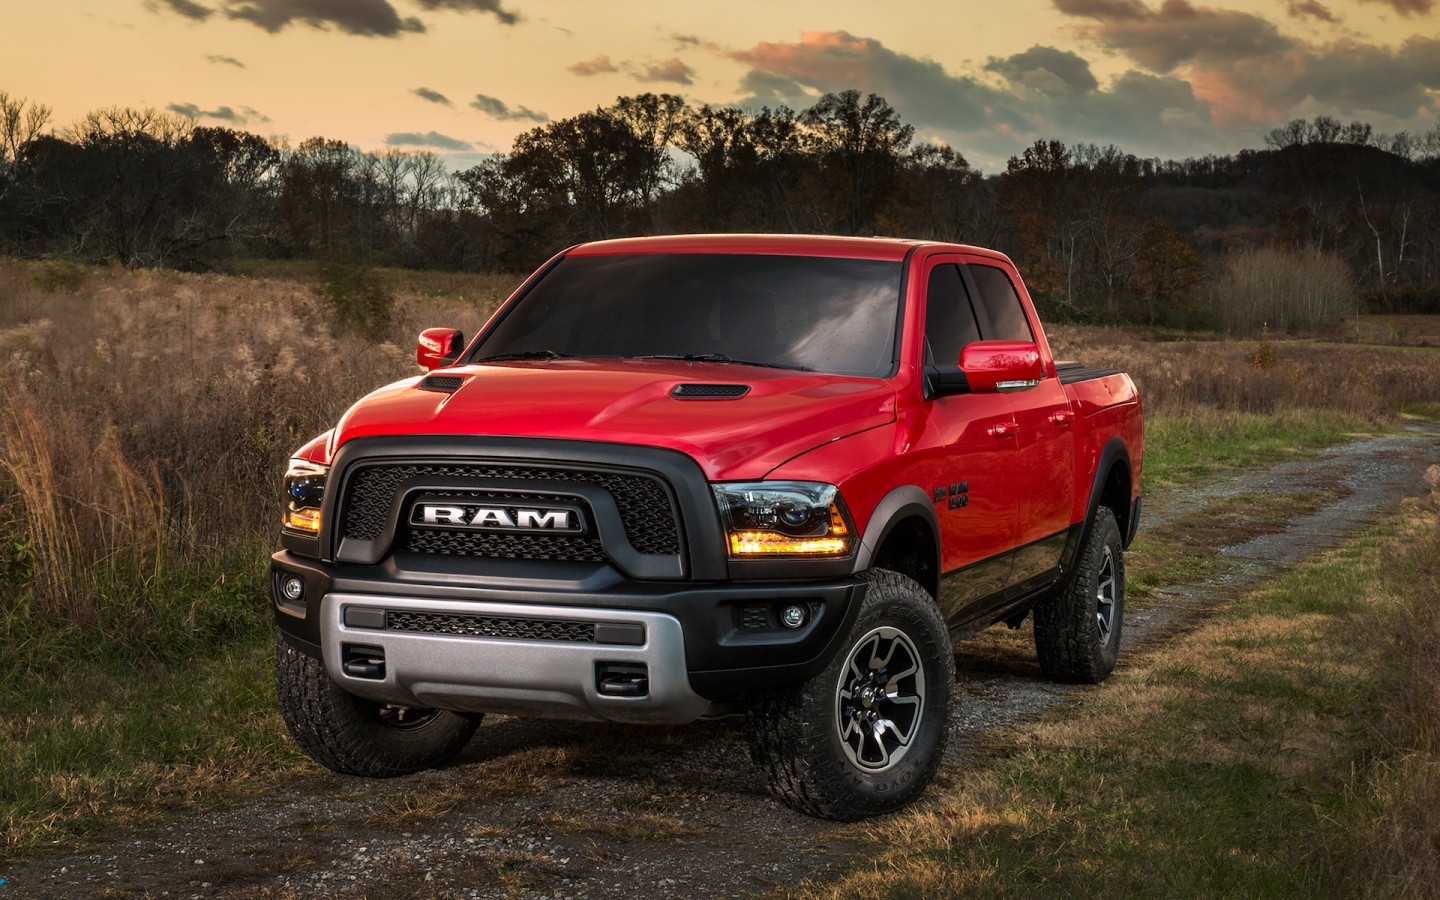 2015 Ram 1500 Rebel Wallpaper Hd Car Wallpapers Id 5054